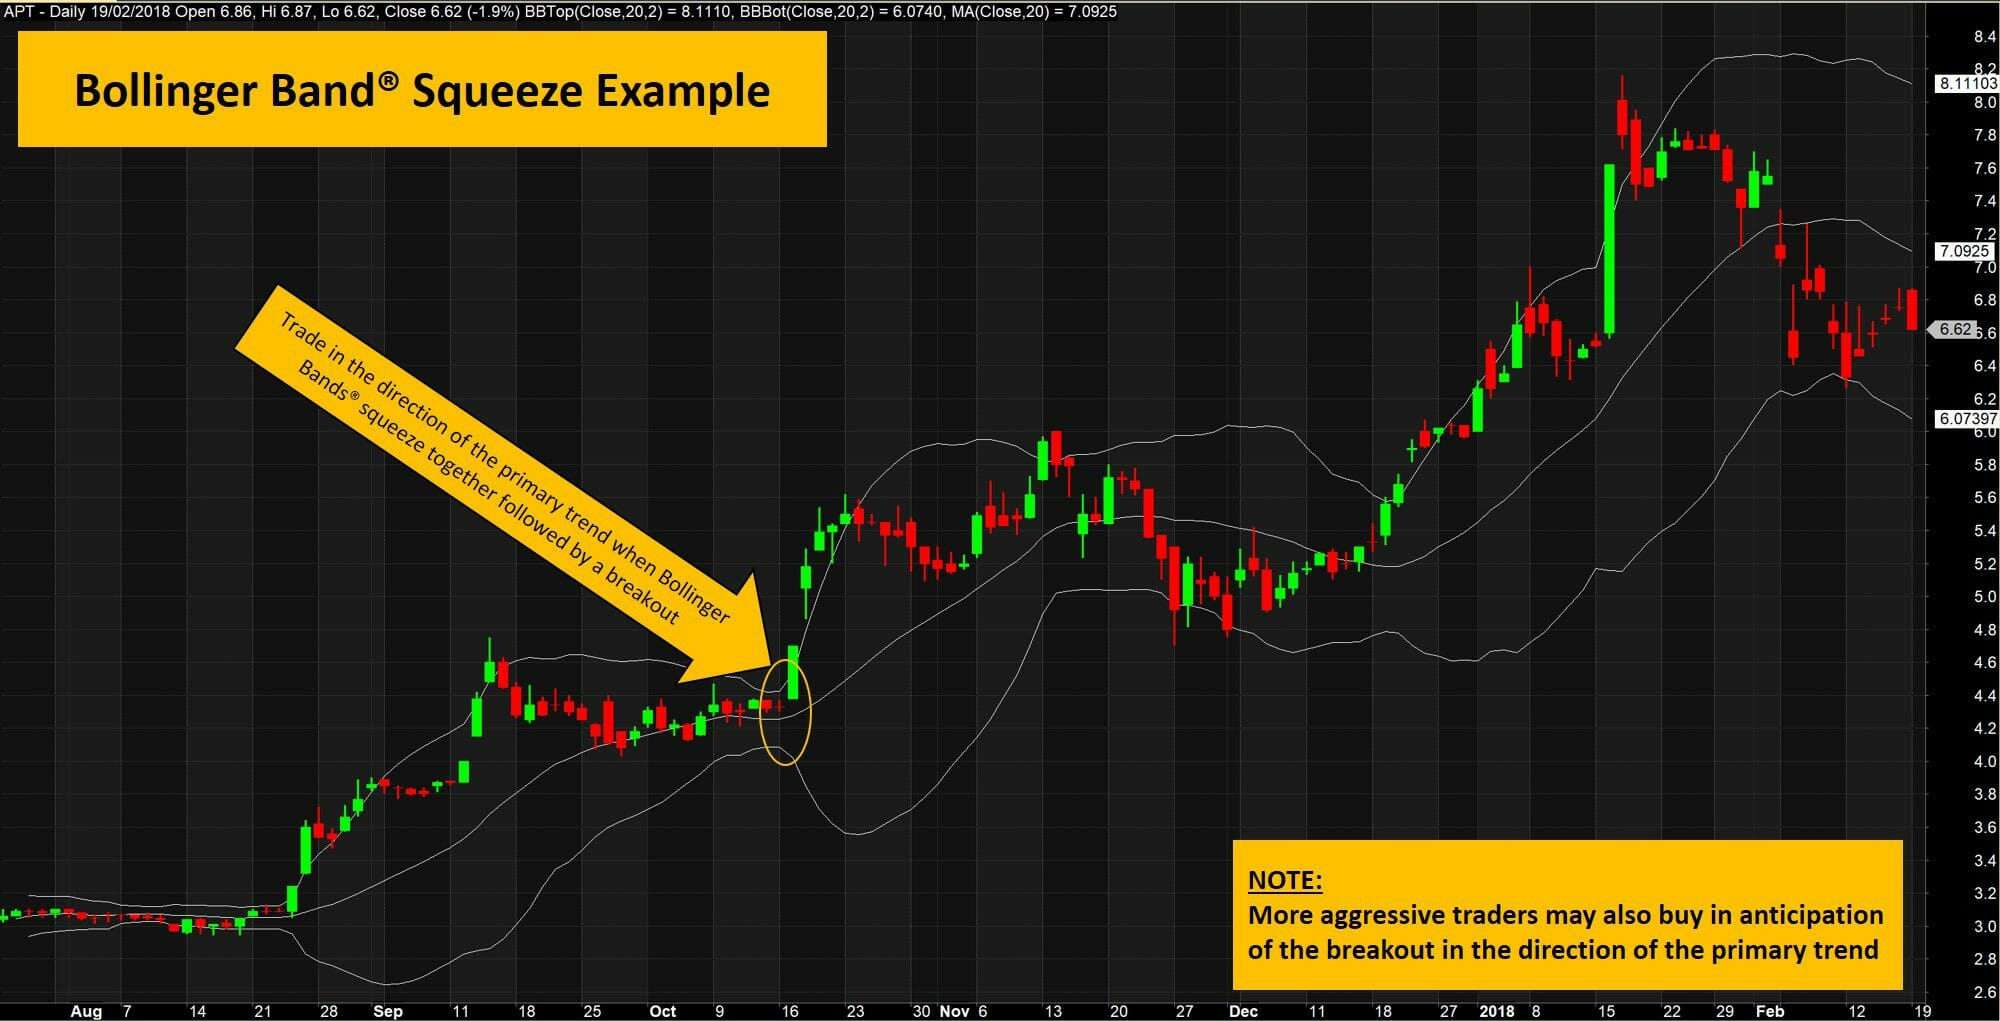 The ultimate guide to bollinger bands - bollinger band squeeze example